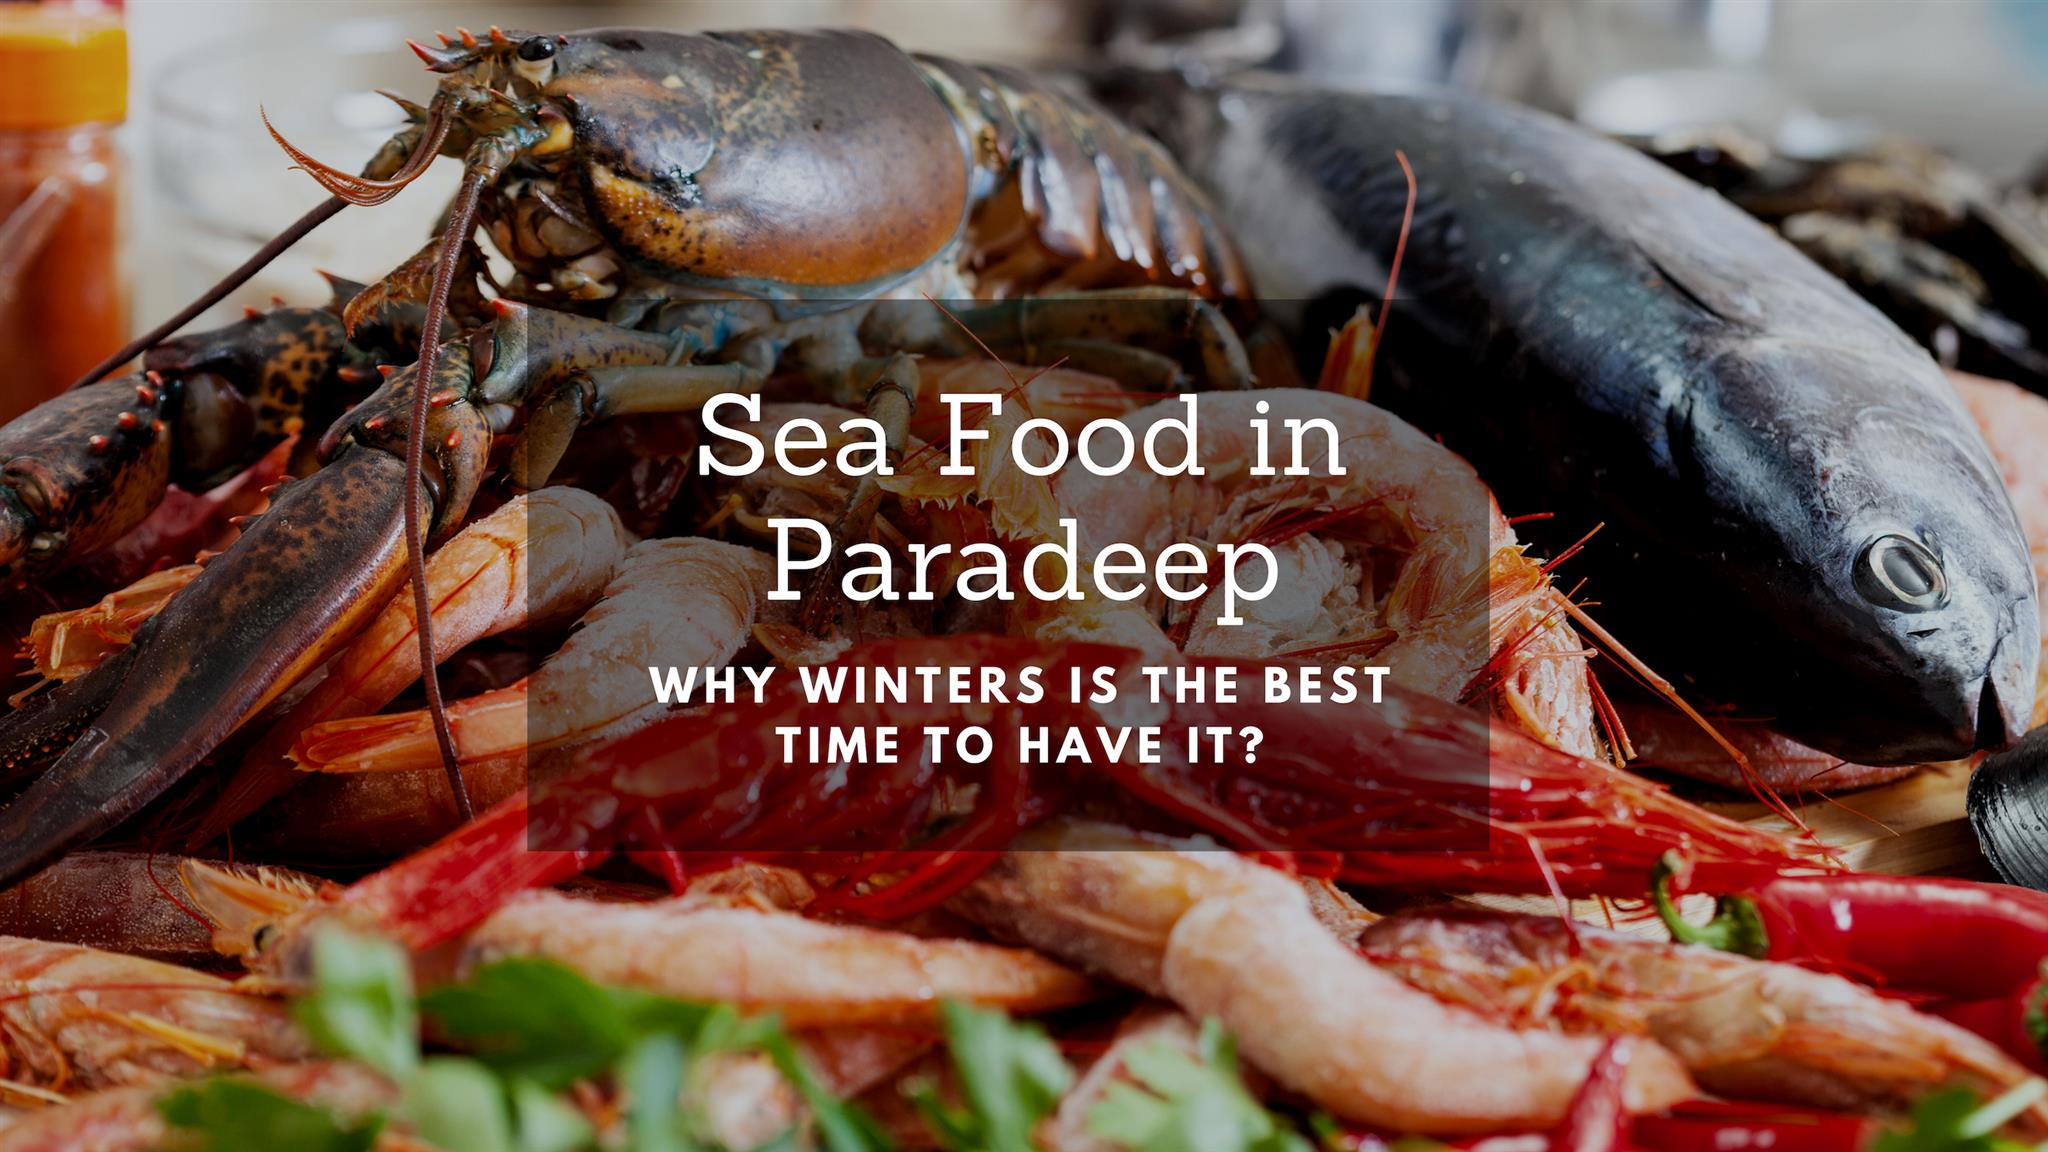 Why Winters is the Best Time to Have Sea Food in Paradeep?